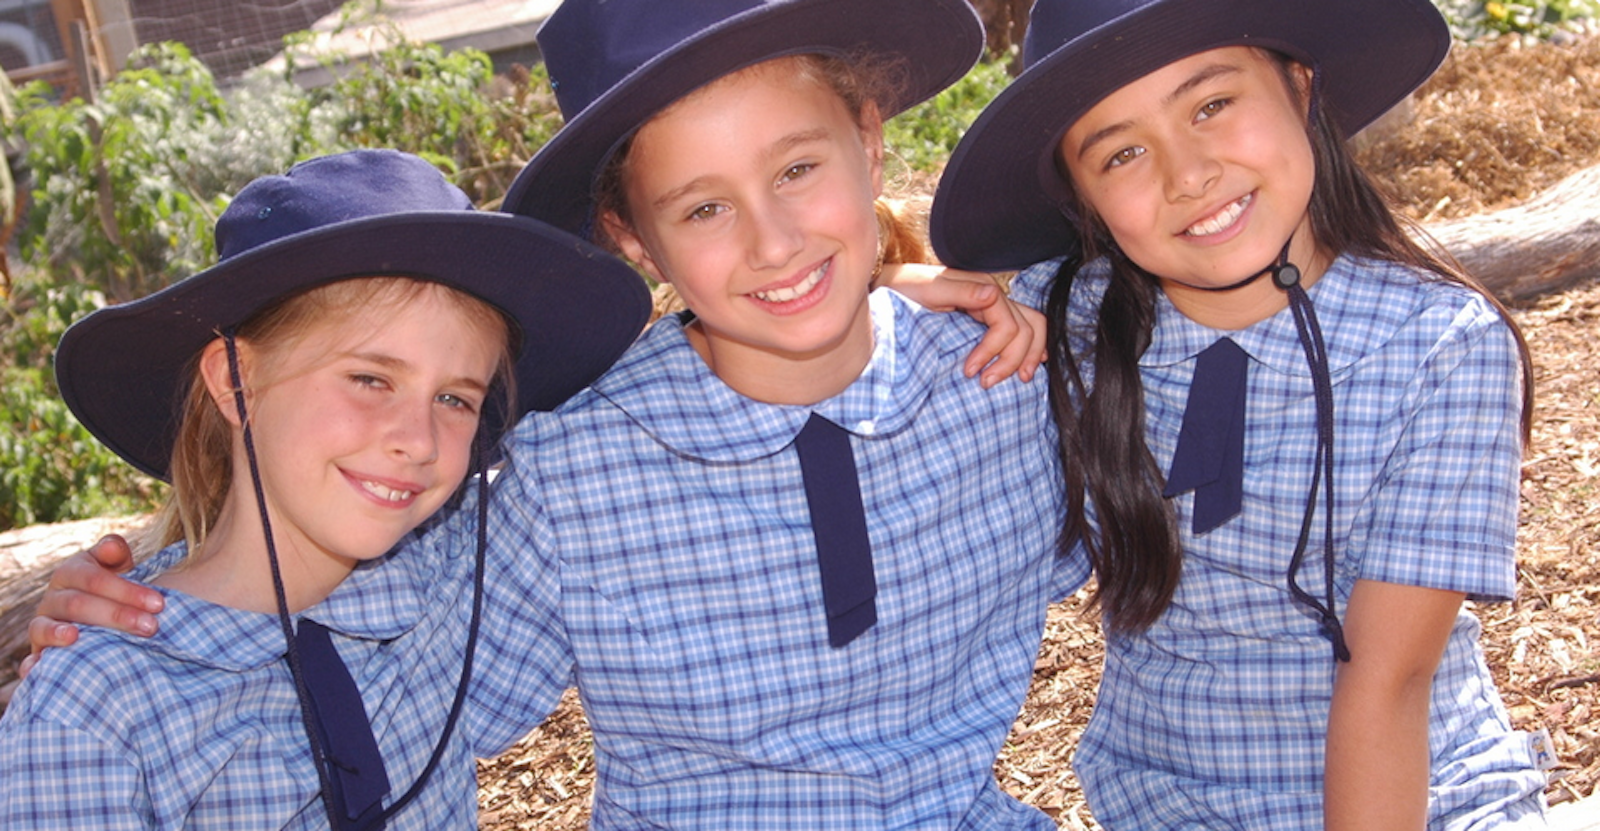 1c26a7555b At East Bentleigh Primary School we have an attractive navy, sky blue and  white school uniform which has variations to suit all children and budgets.